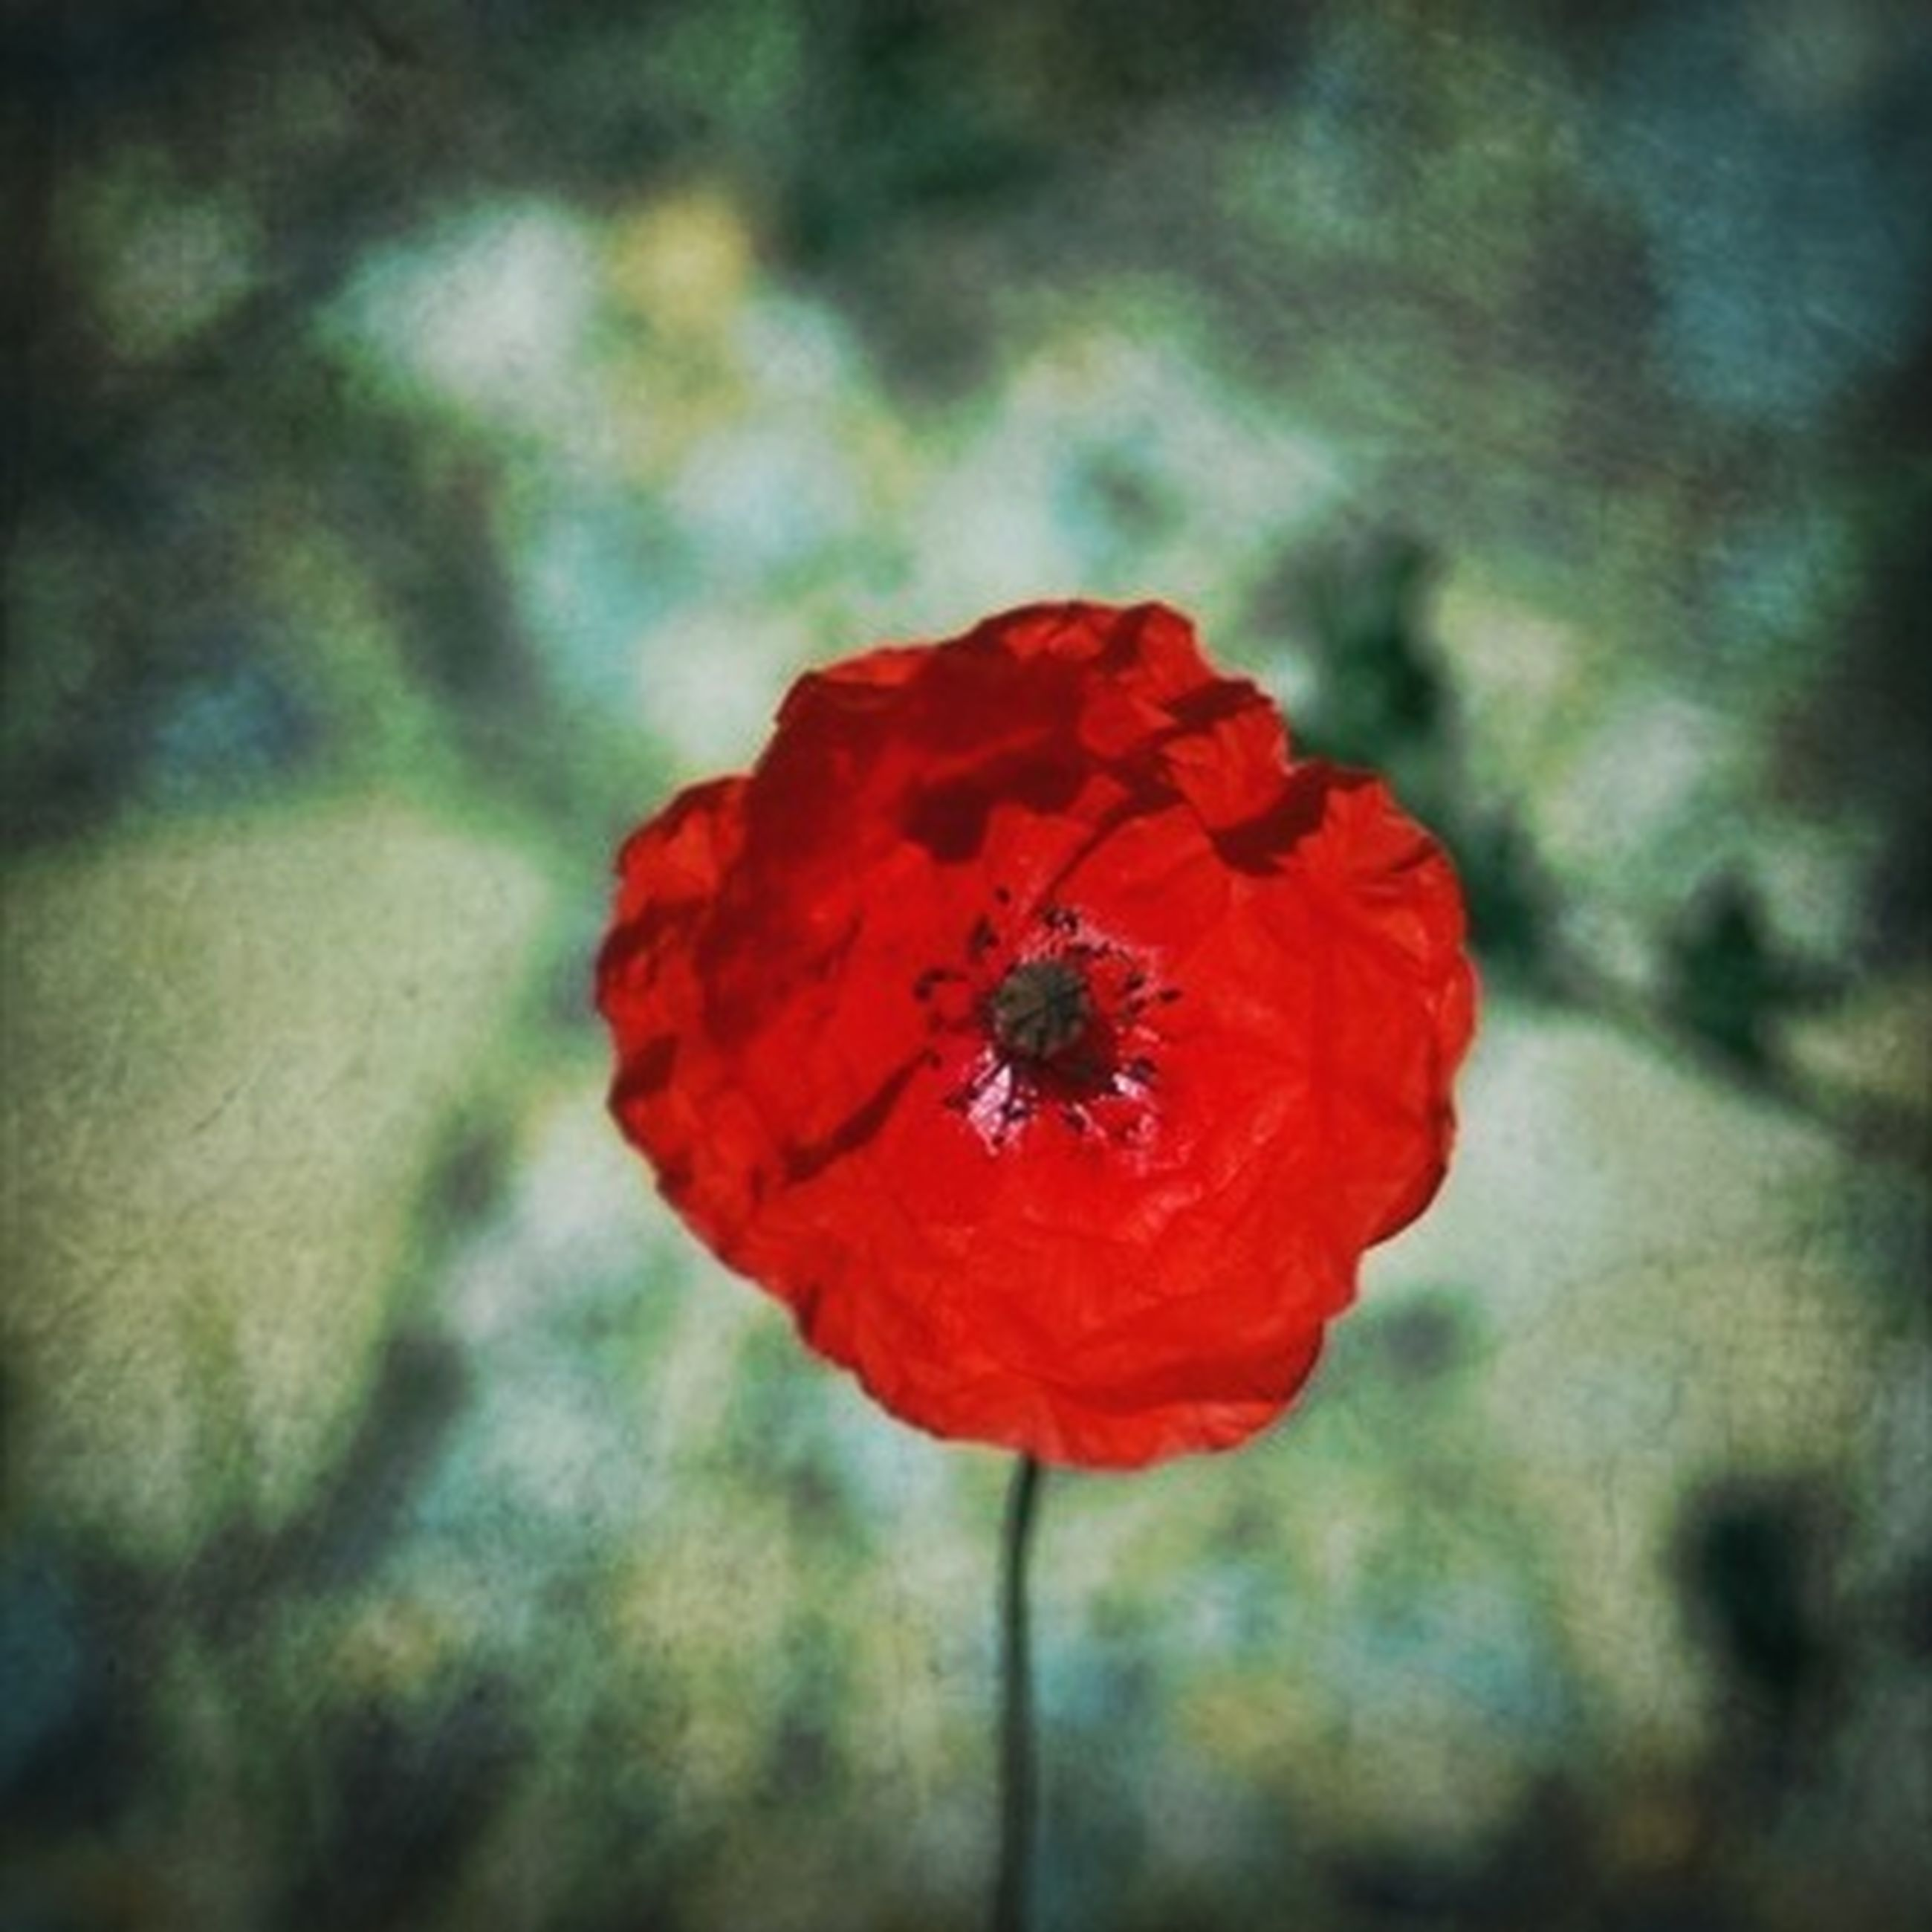 flower, petal, flower head, freshness, red, fragility, growth, beauty in nature, close-up, single flower, focus on foreground, blooming, poppy, nature, plant, in bloom, pollen, stamen, stem, selective focus